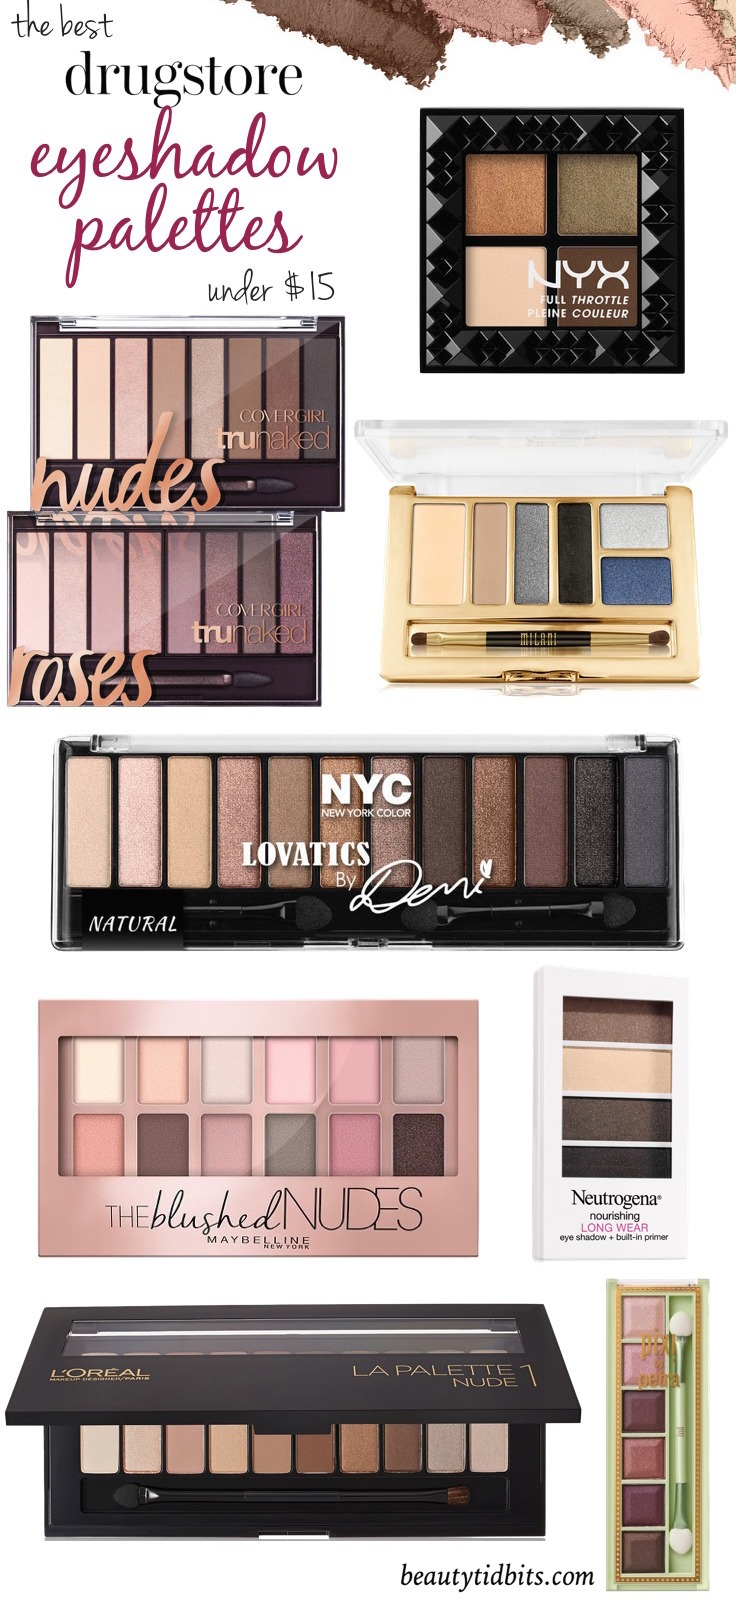 Looking for the best drugstore eyeshadow palettes? Here are 8 top-notch drugstore palettes that give you the best bang for your buck!